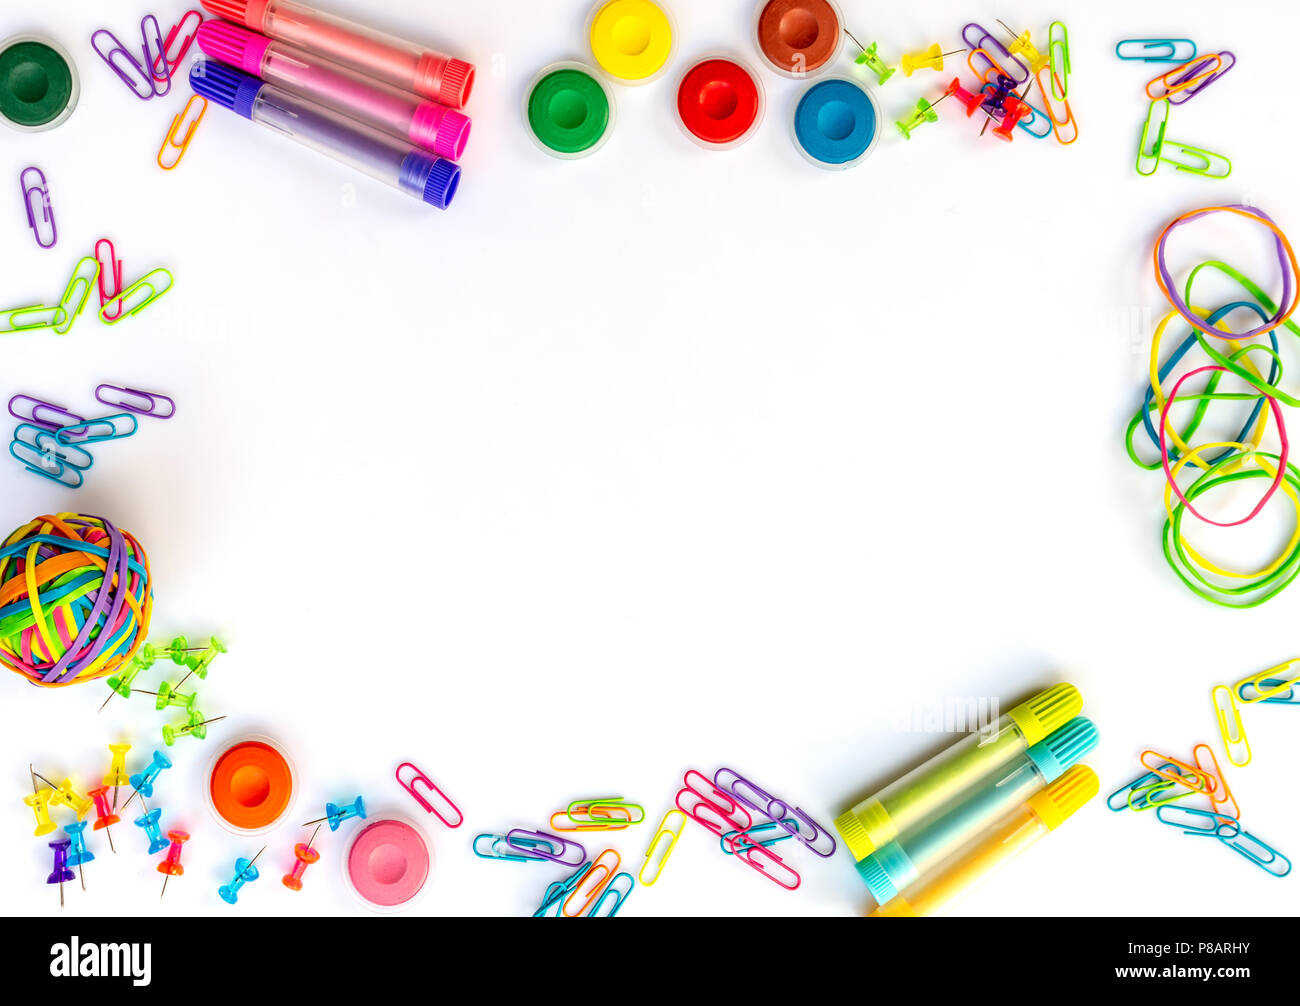 Background Frame Of Colorful School Supplies Isolated On White Iwith